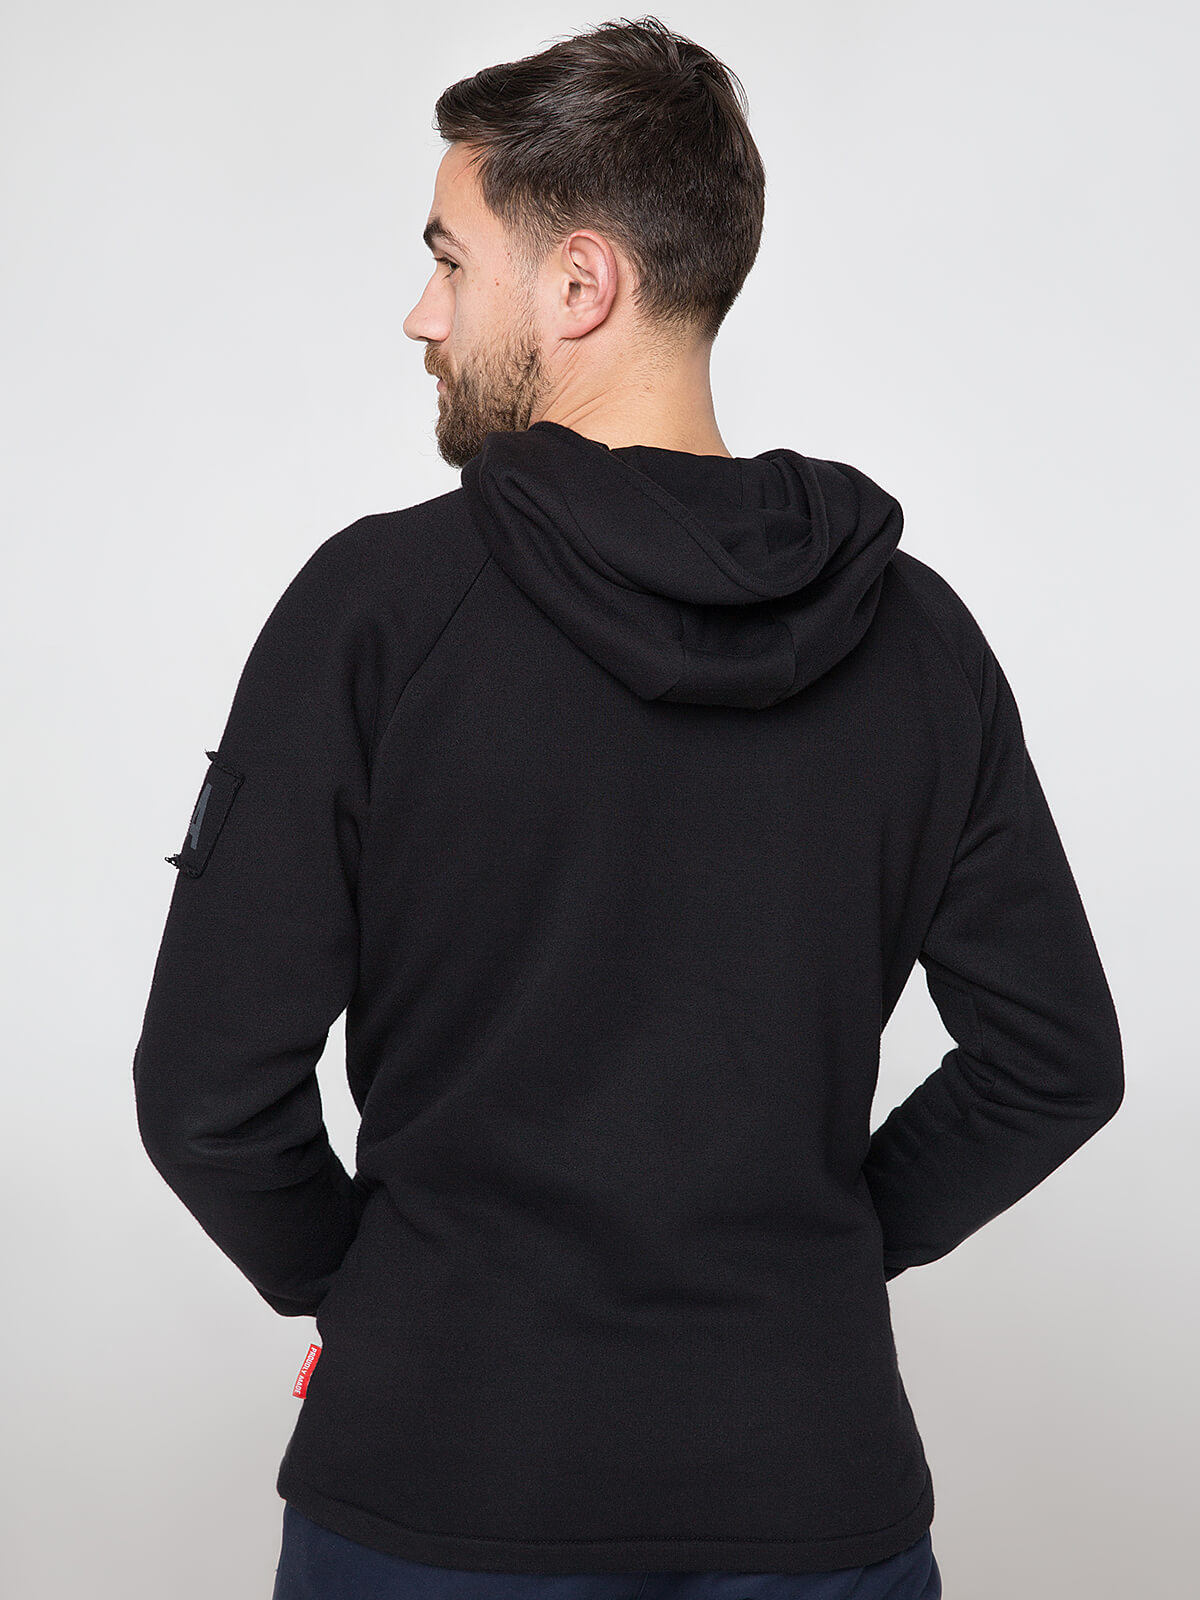 Men's Hoodie Roundel. Color black.  Height of the model: 180 cm.